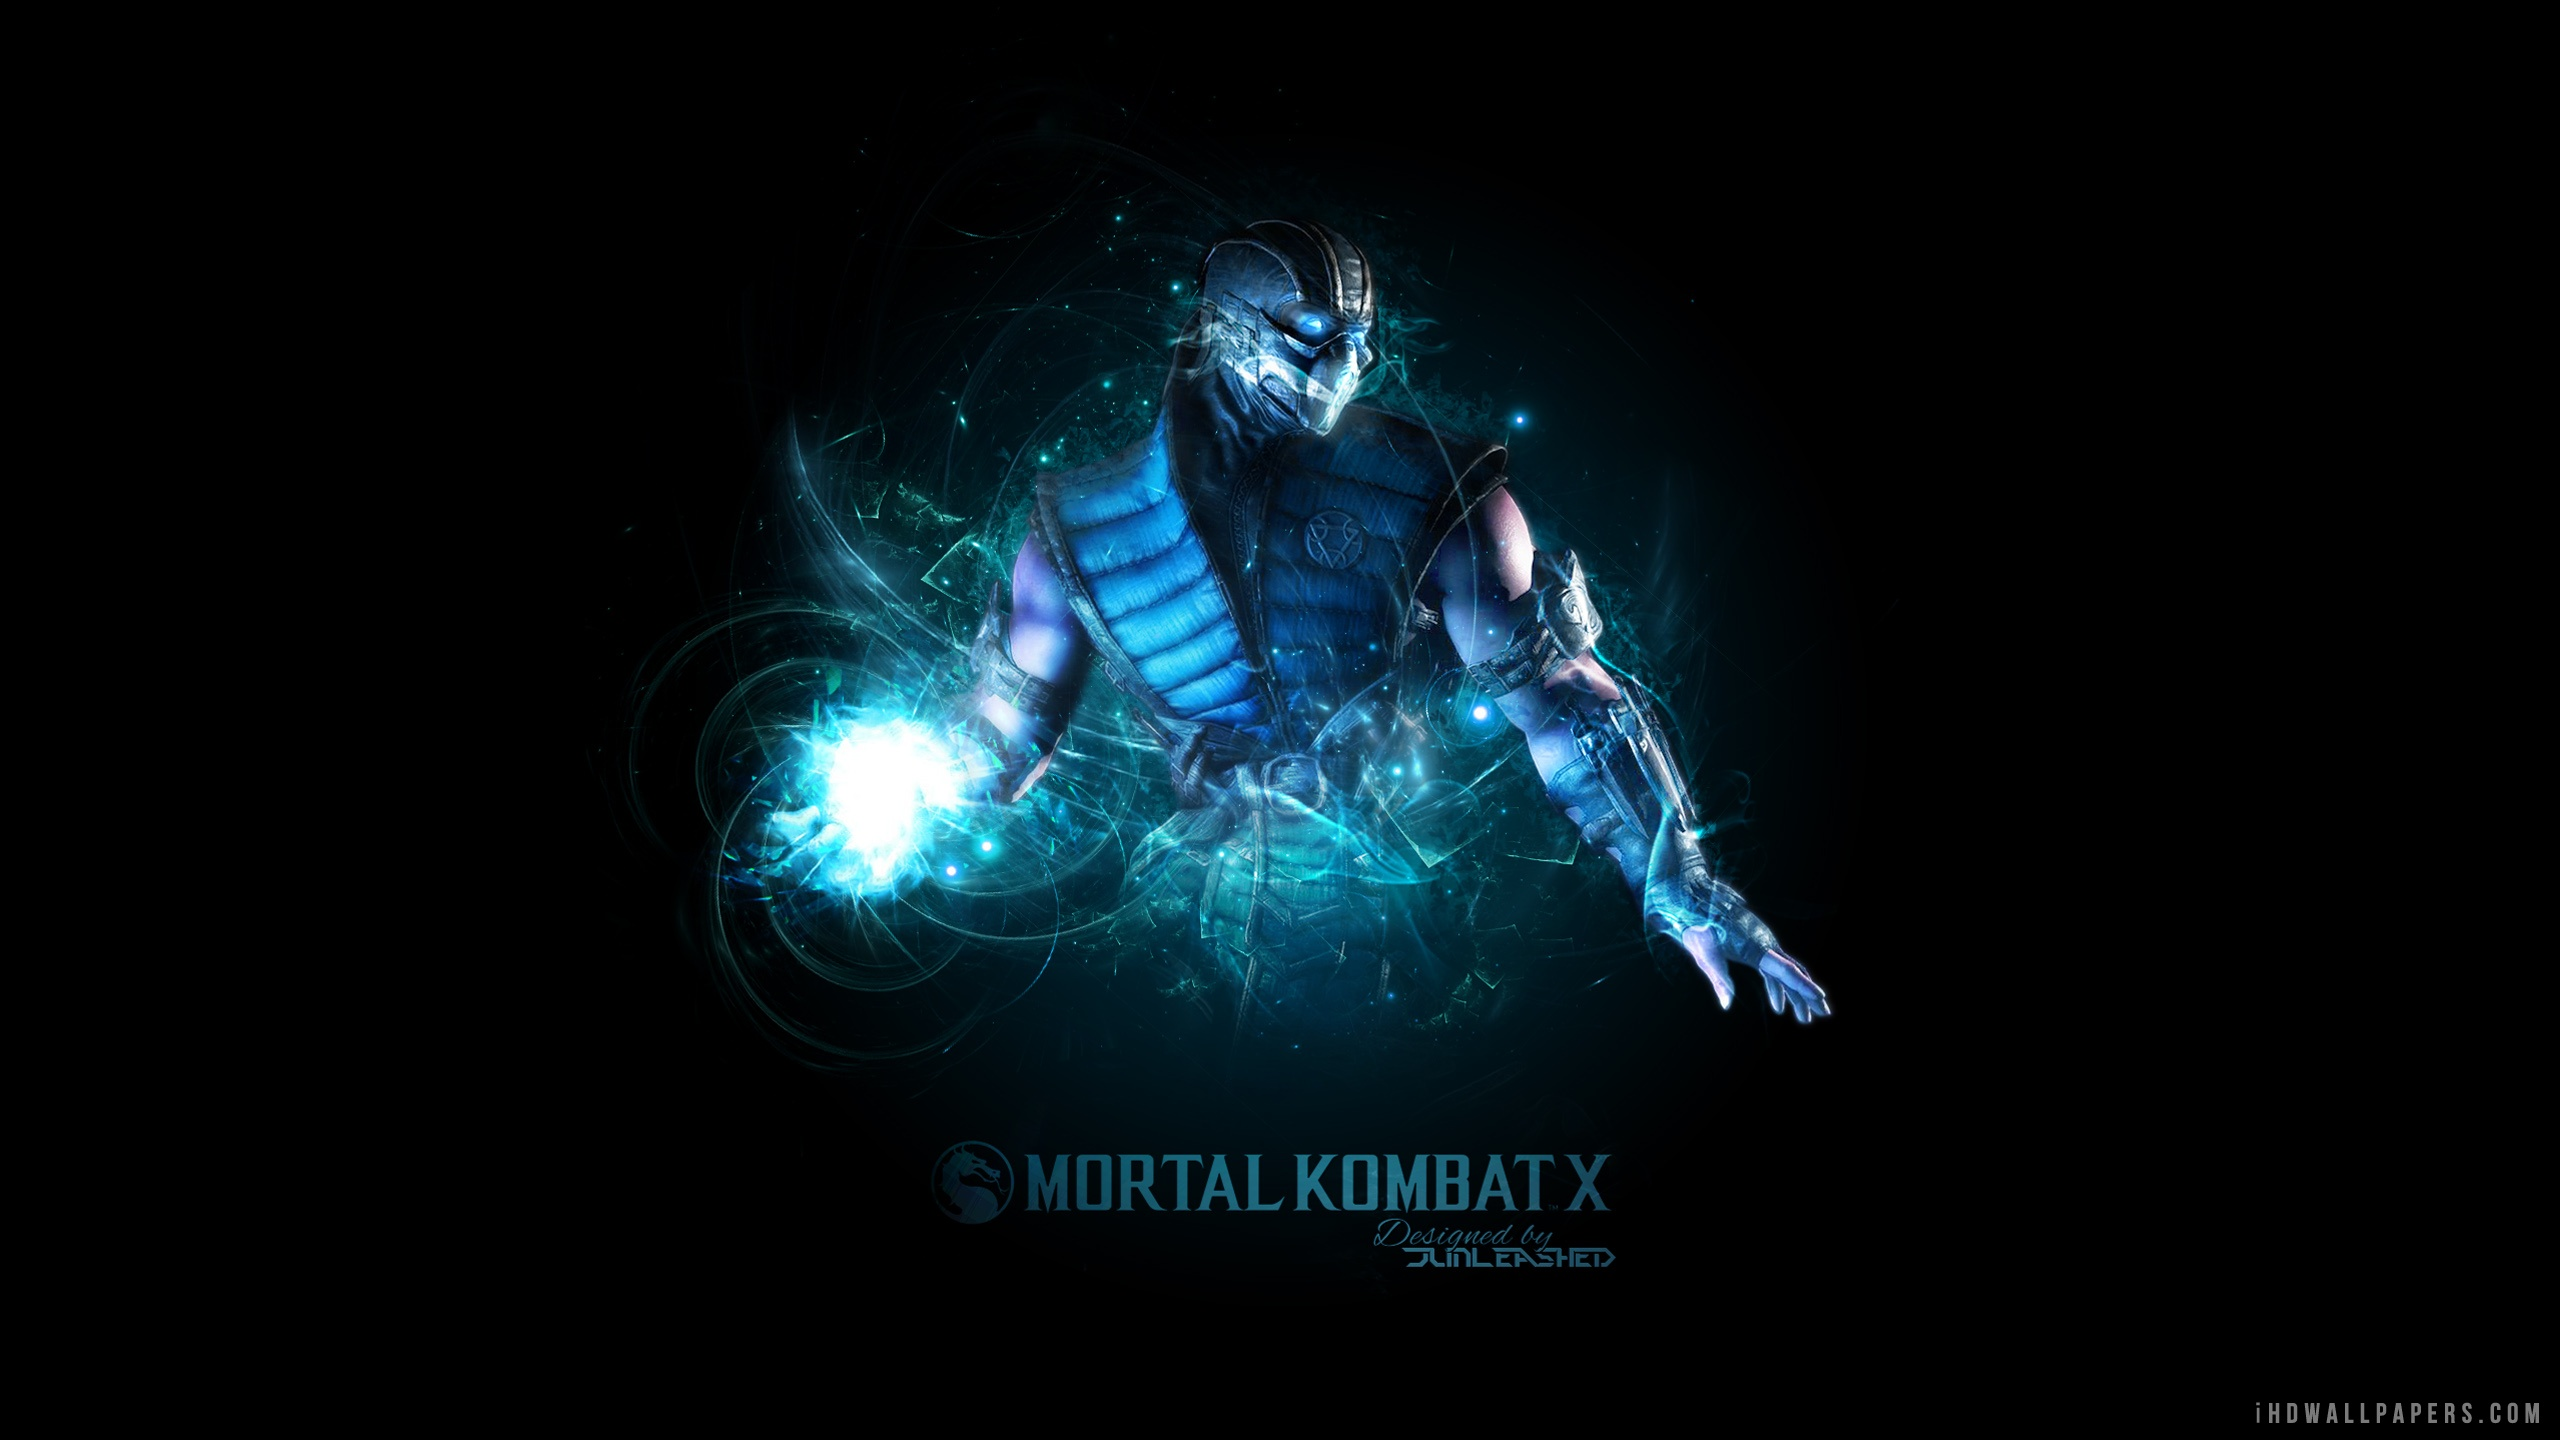 Mortal Kombat X HD Wallpaper   iHD Wallpapers 2560x1440